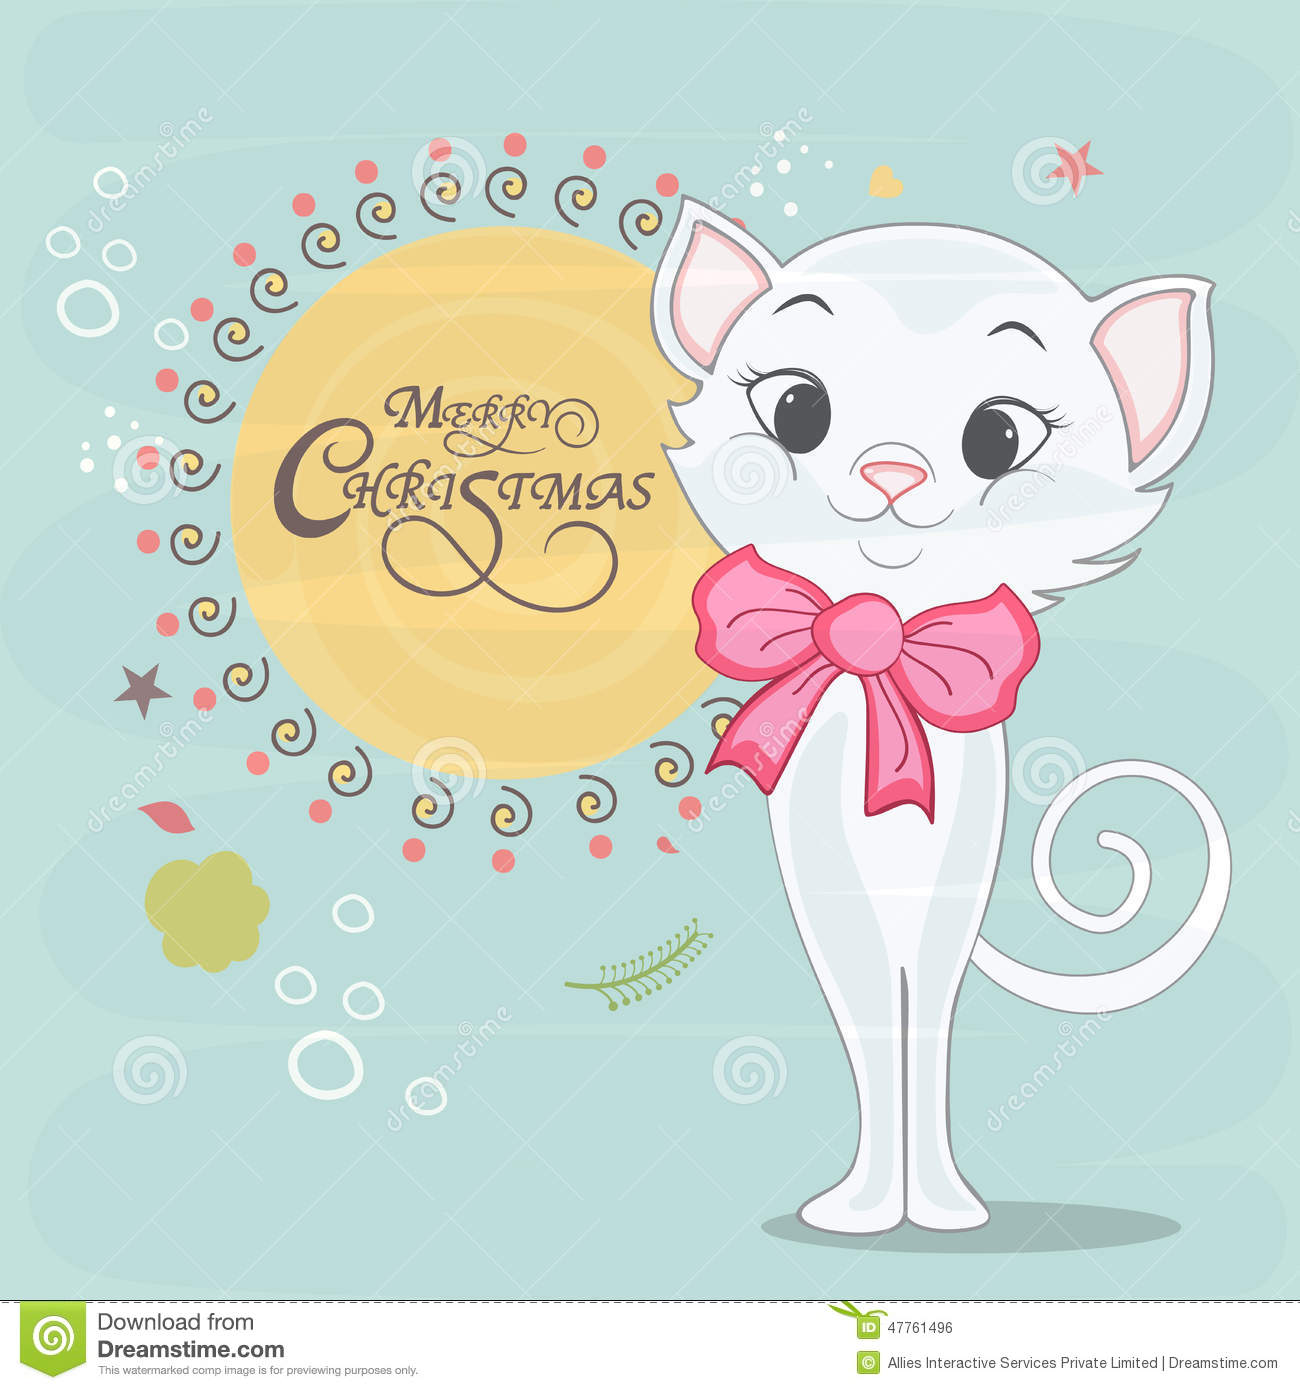 Beautiful greeting card design for merry christmas celebrations beautiful greeting card design for merry christmas celebrations advertising december kristyandbryce Image collections